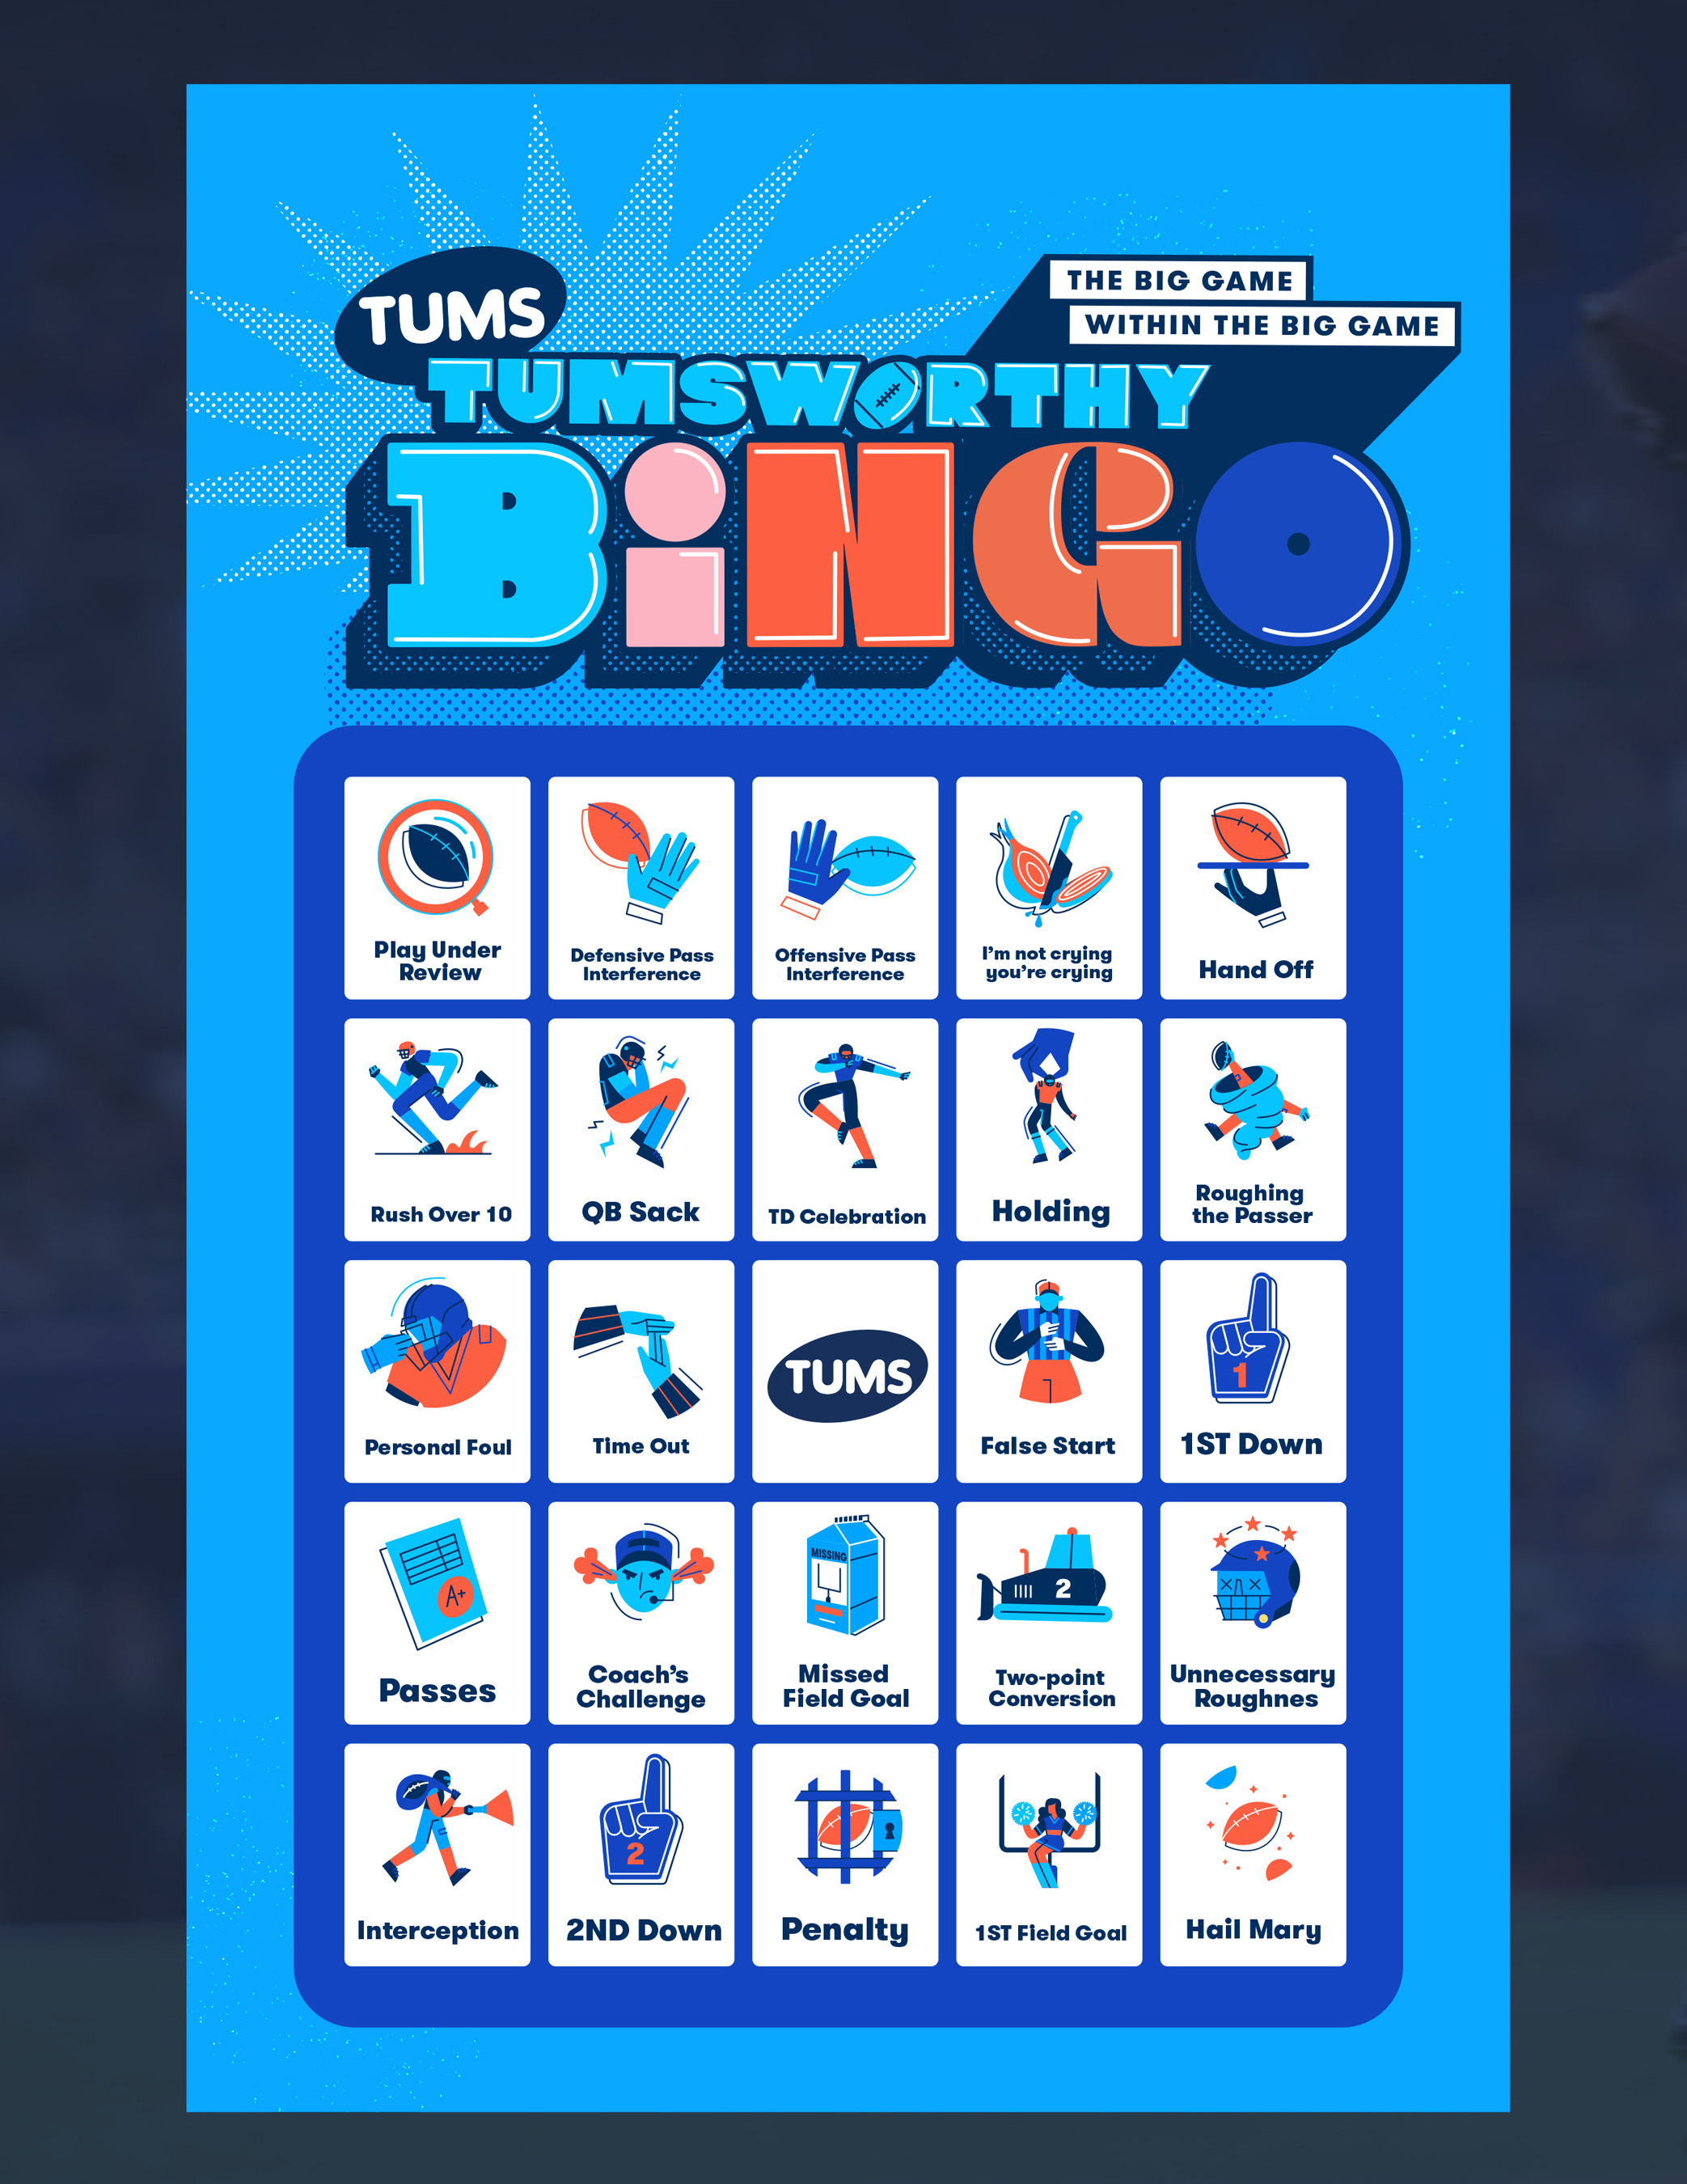 Fans can download their official digital game board from @TUMSOfficial beginning today and follow along during the BIG GAME on February 7.